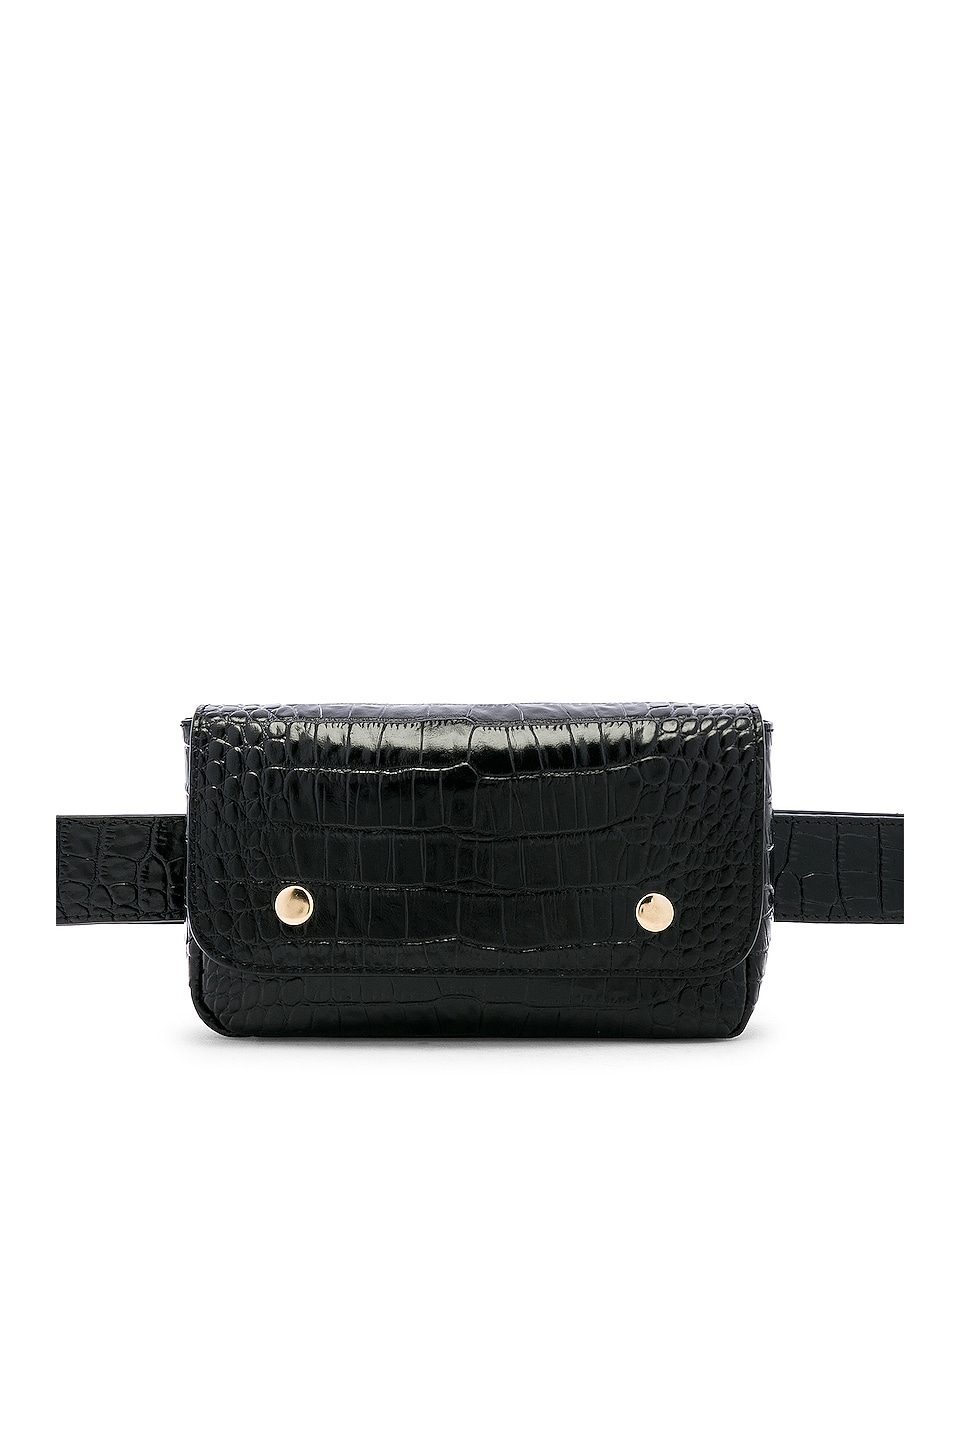 L'Academie Caden Belt Bag in Black